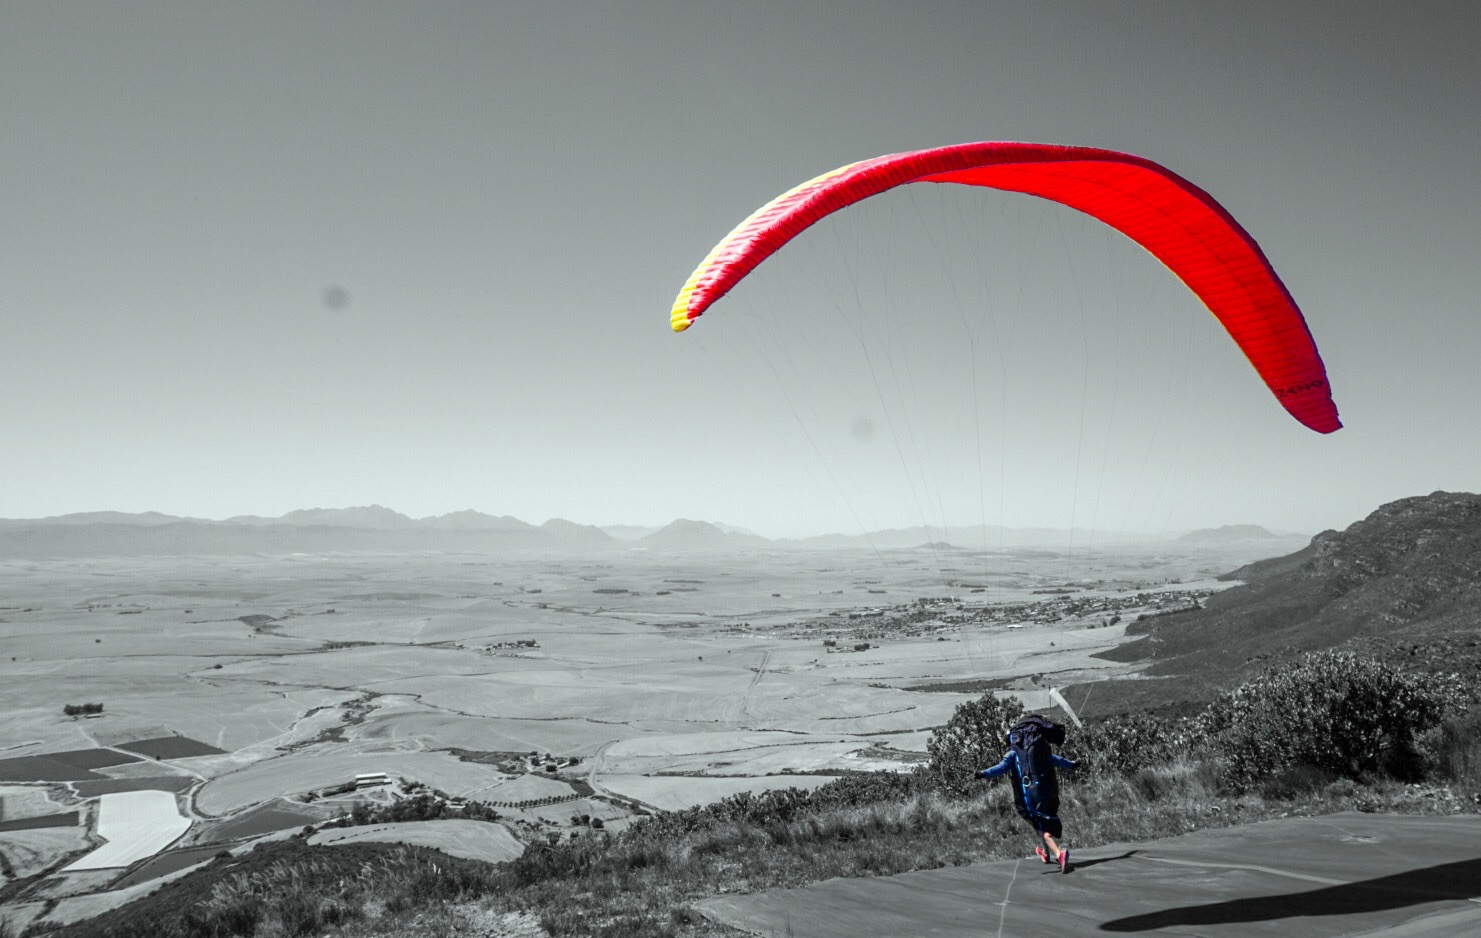 alpsfreeride paragliding black white red colors